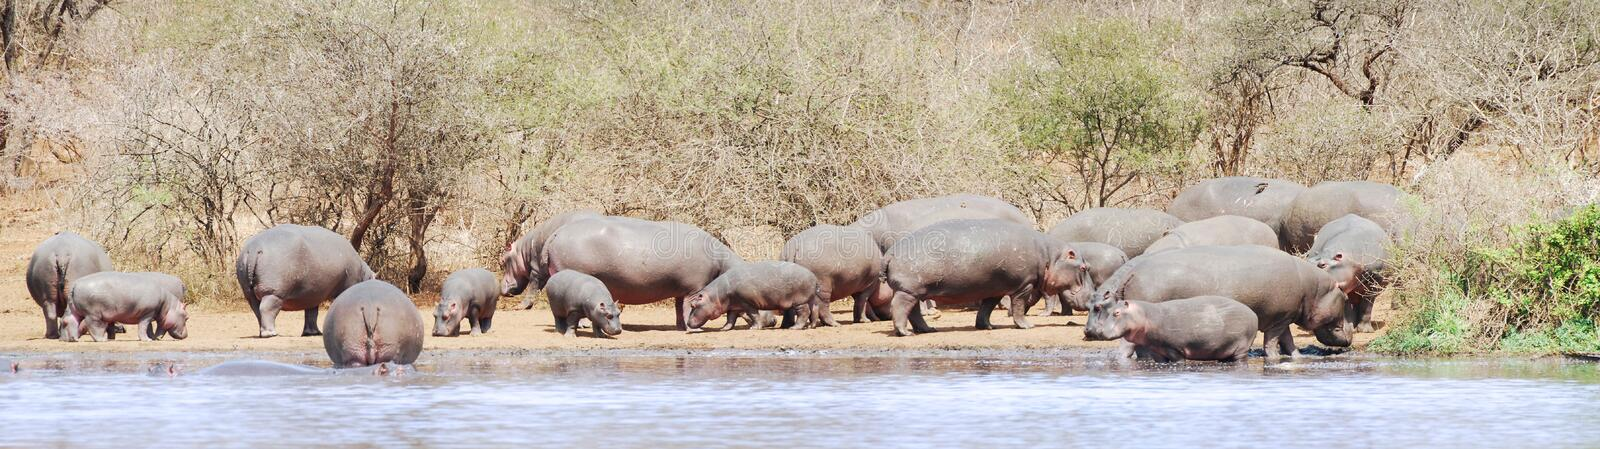 Download Hippo panorama stock image. Image of hippos, herd, group - 19408249